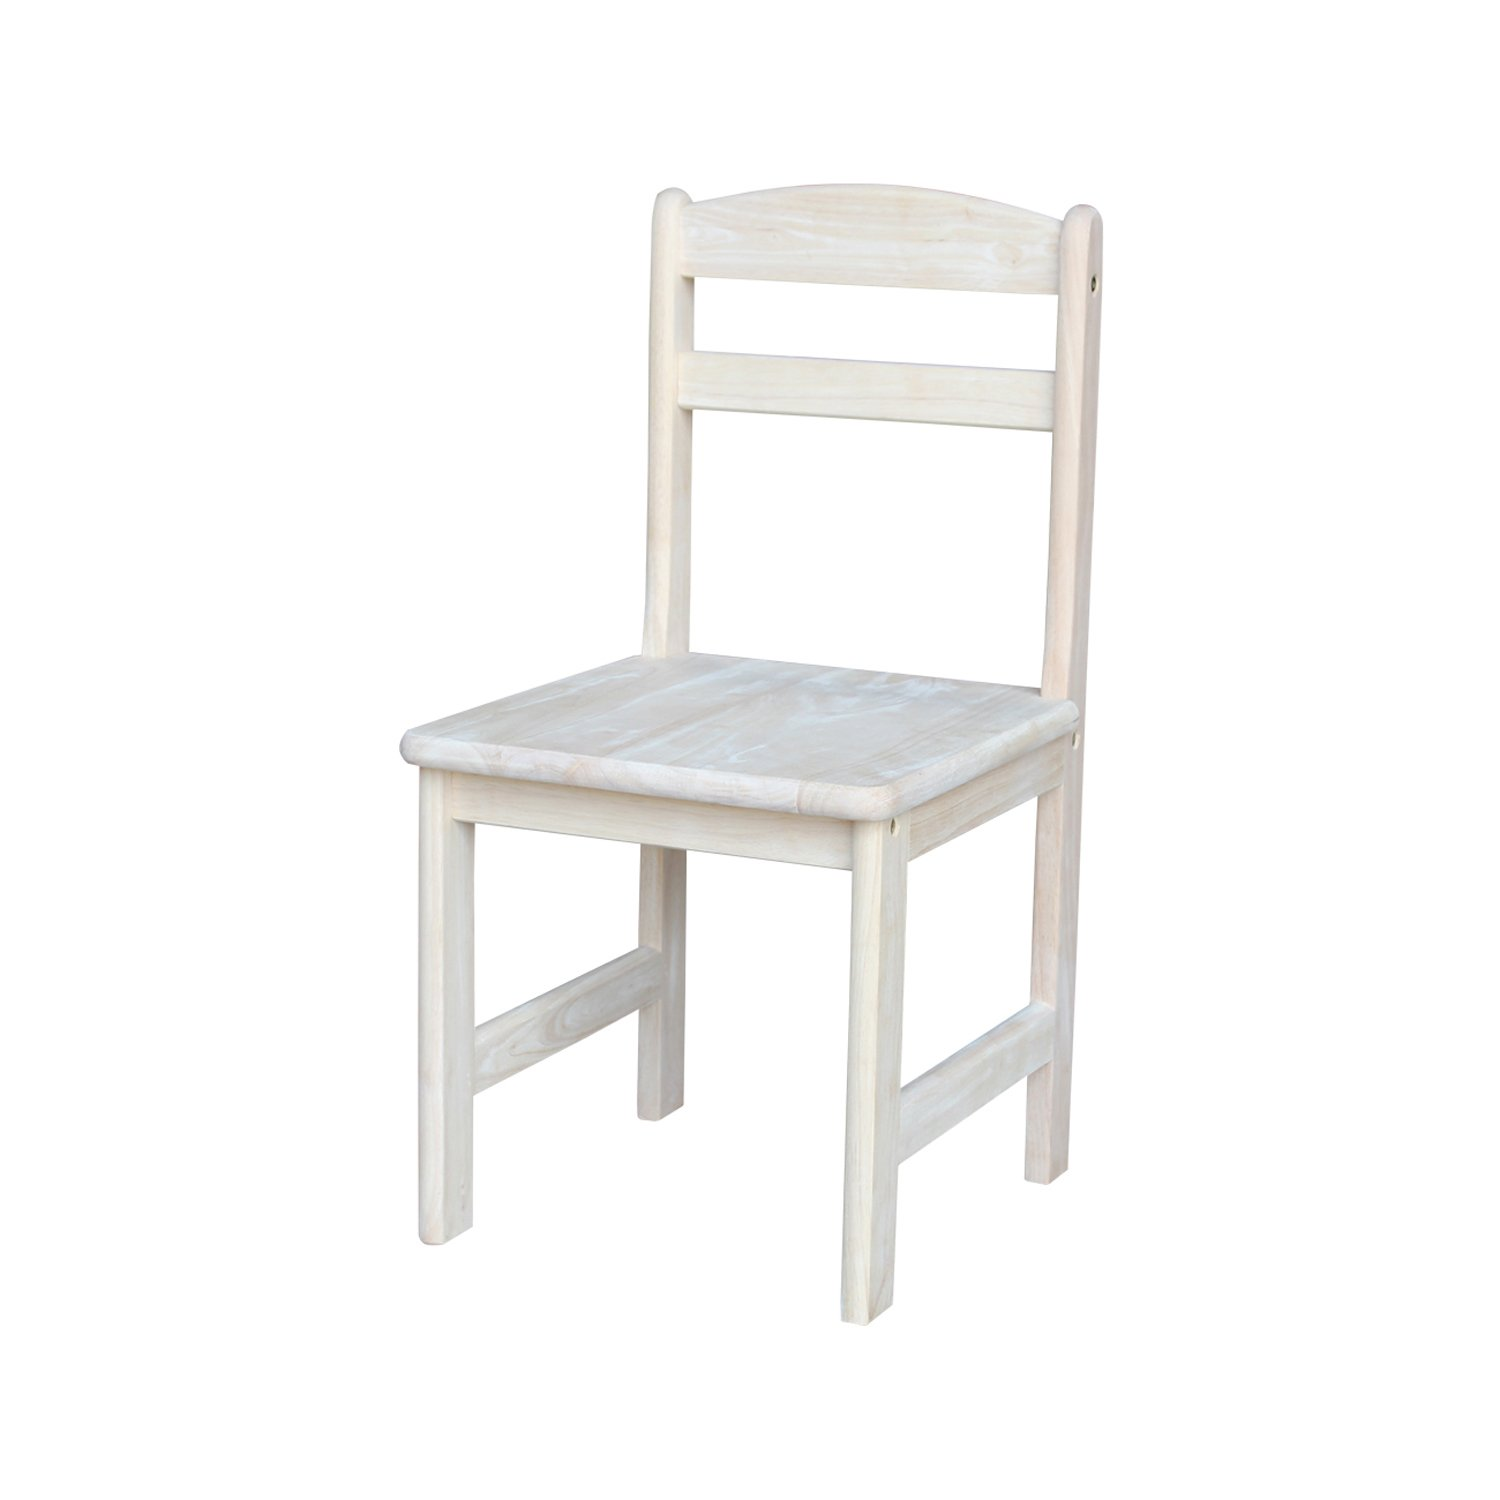 International Concepts Unfinished Juvenile Chair, Set of 2